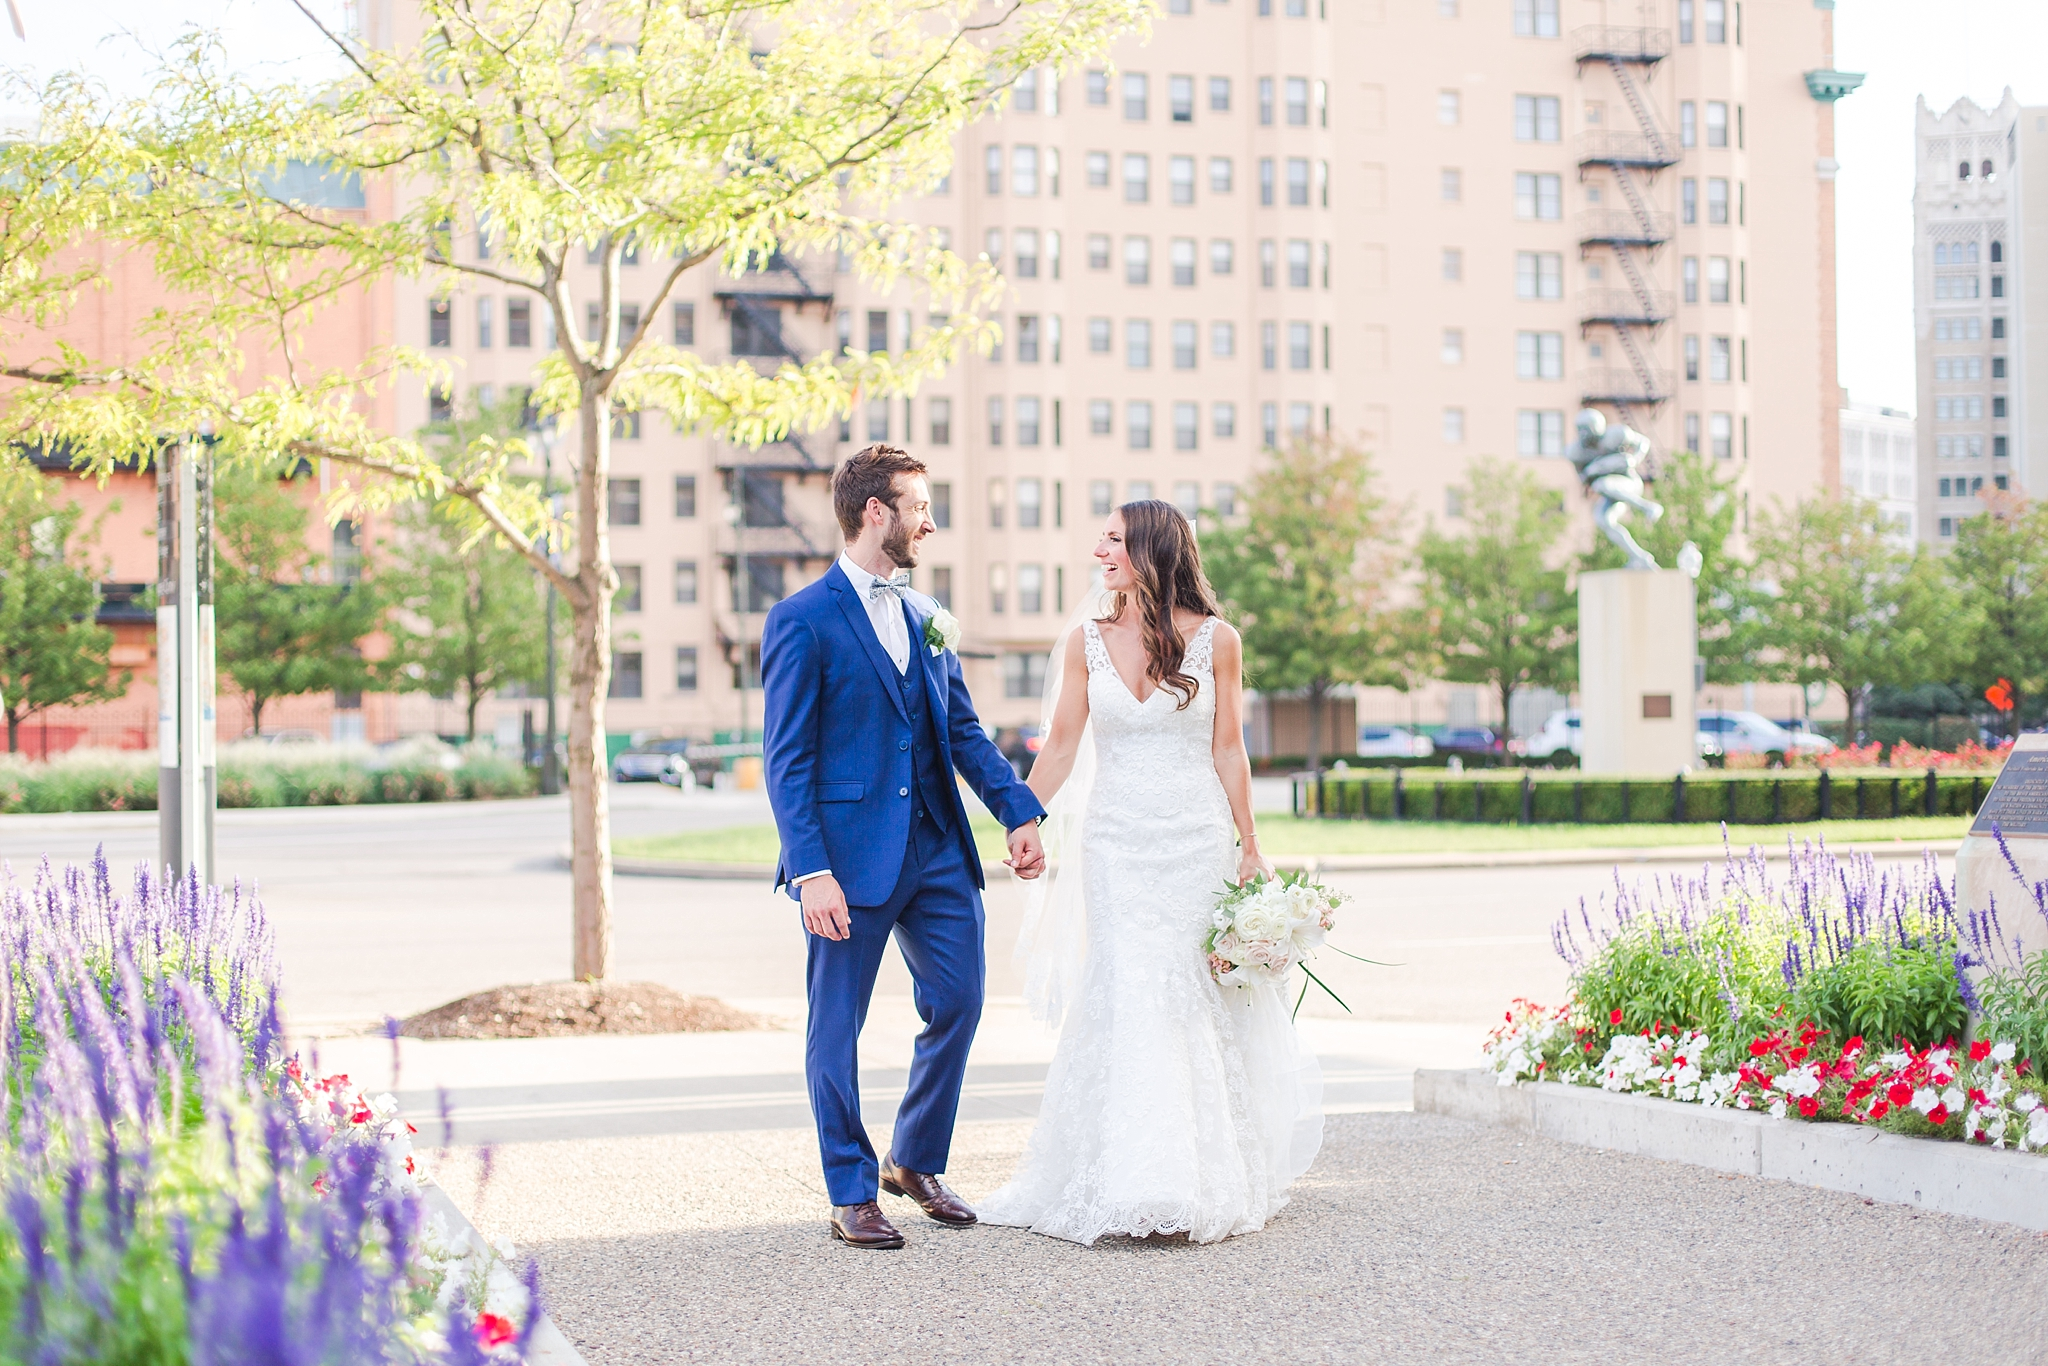 playful-blush-navy-wedding-photos-the-detroit-athletic-club-in-detroit-michigan-by-courtney-carolyn-photography_0042.jpg